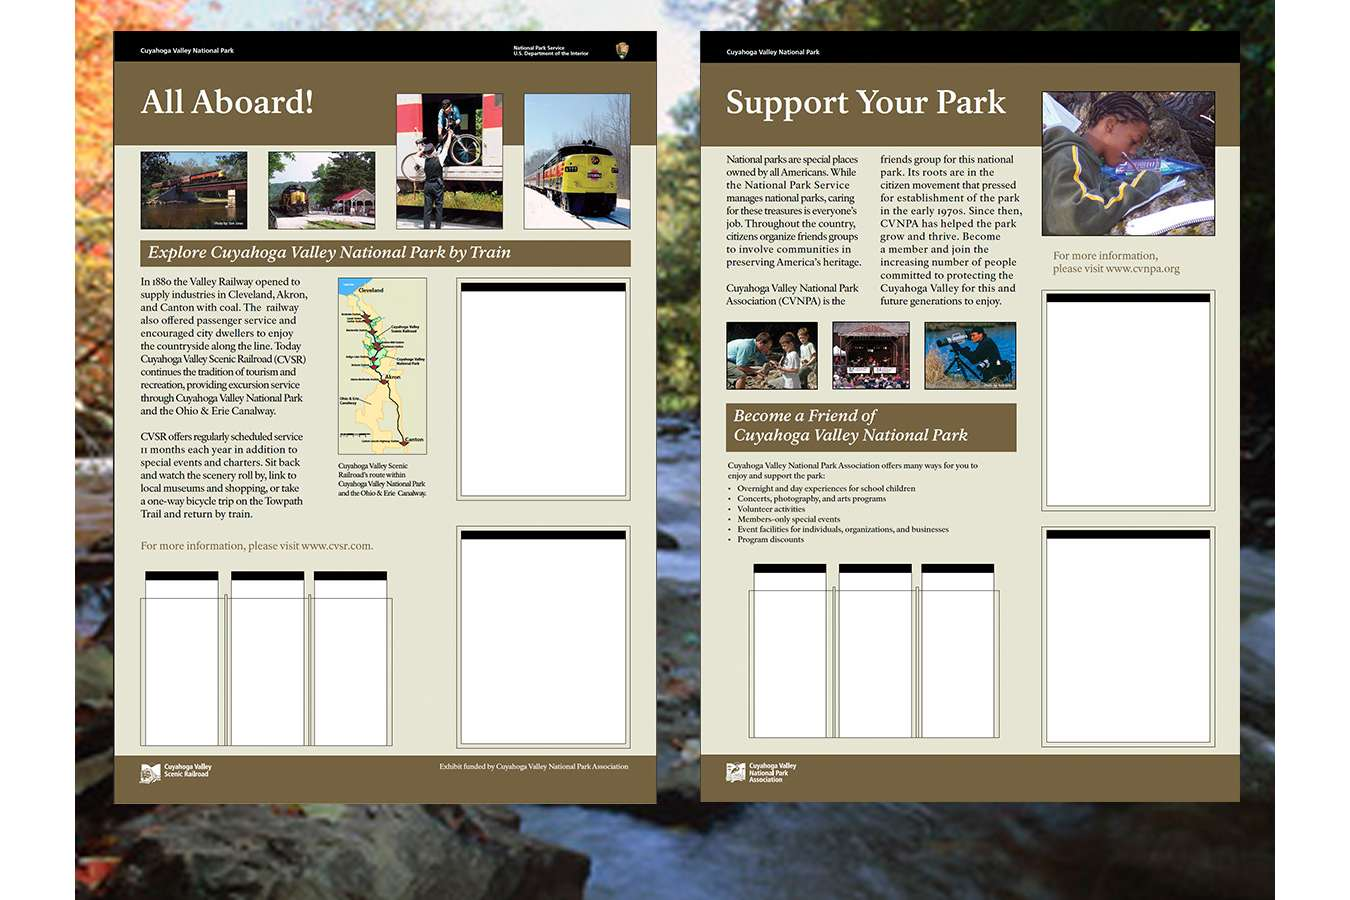 CUVANPS5 : Waysides for the park included brochure holders for maps, flyers, daily schedules and updates